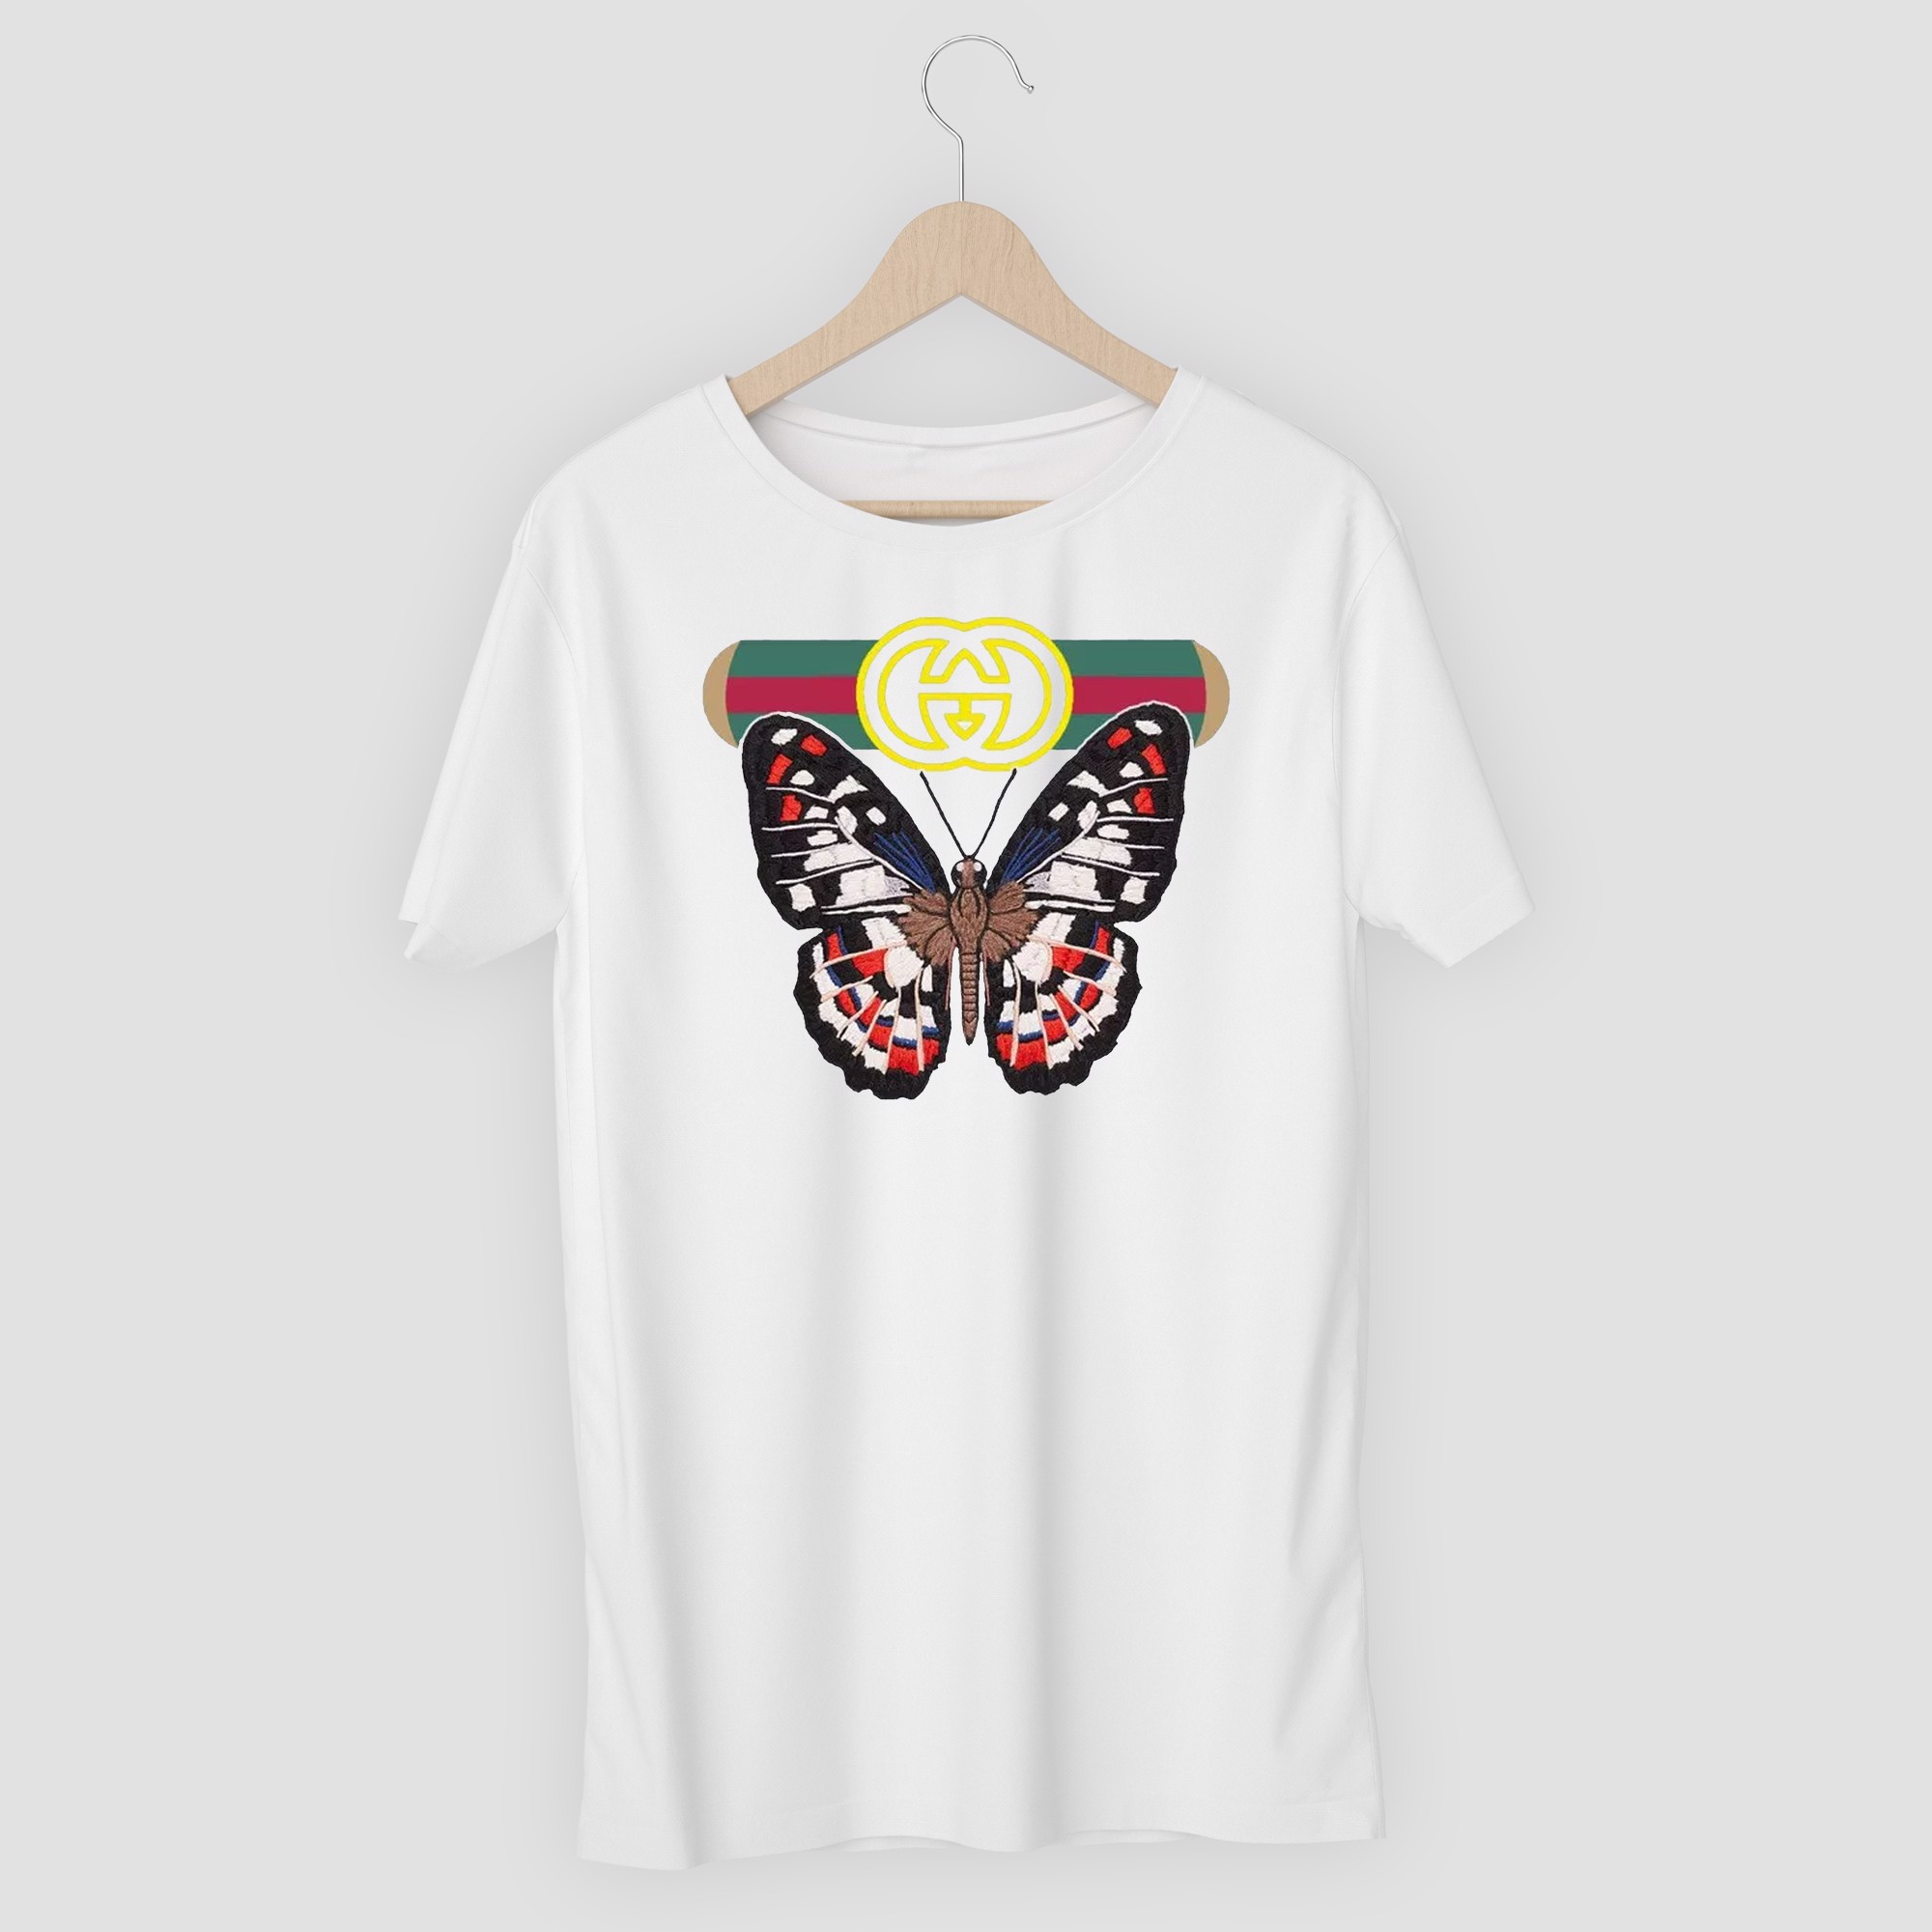 ÁO THUN IN CAO CẤP BUTTERFLY GUCCI